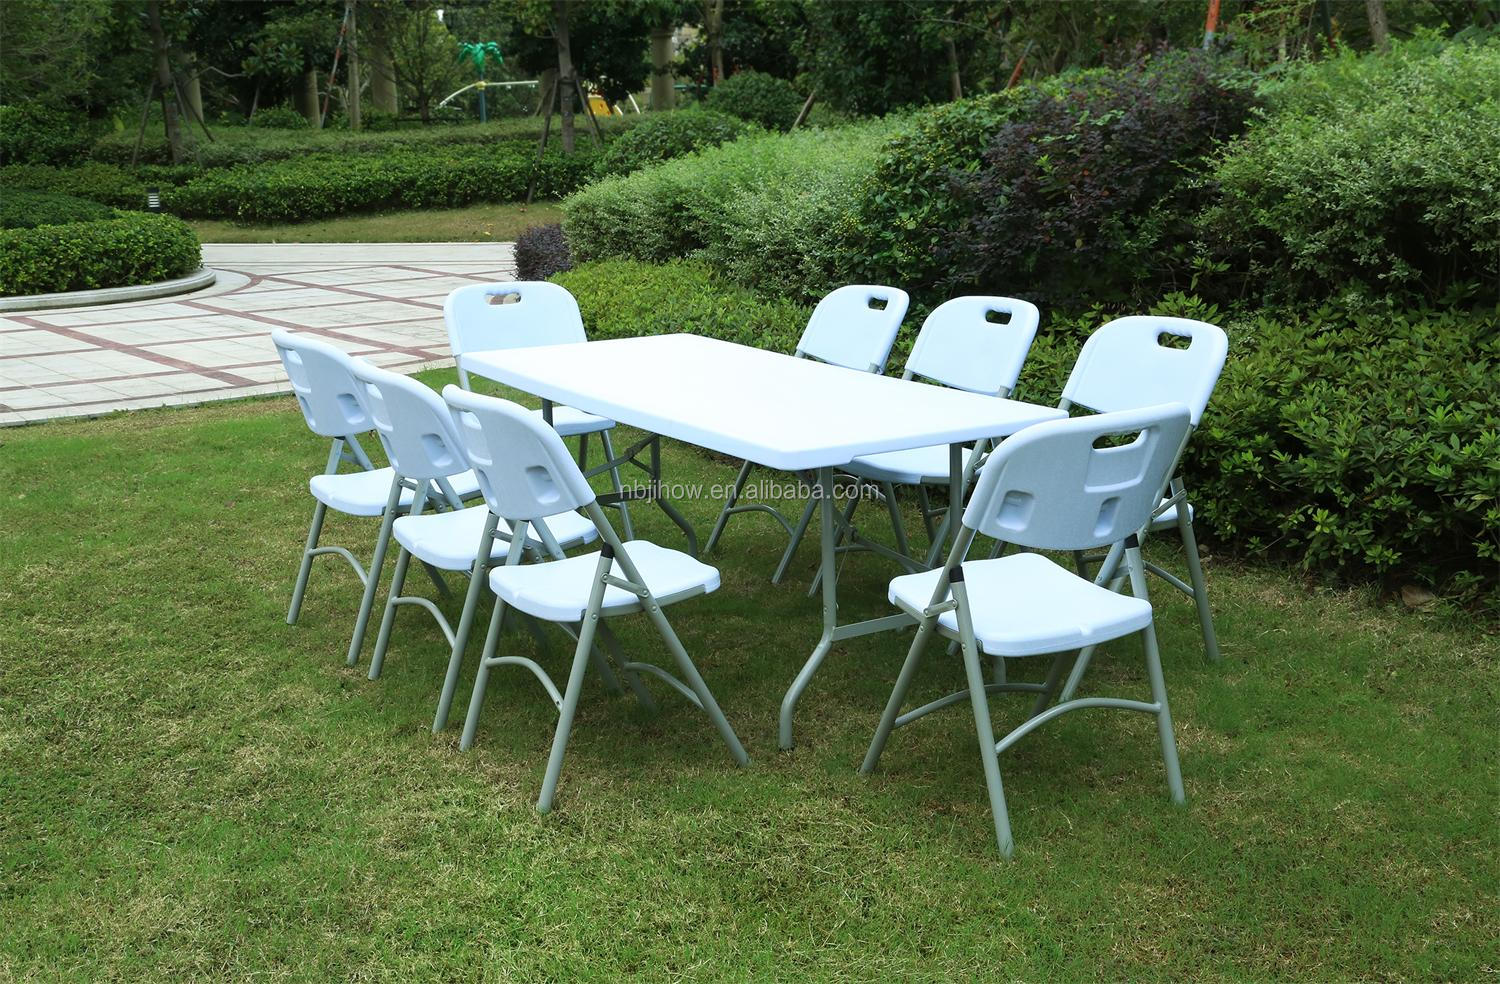 High quality garden plastic HDPE folding chair